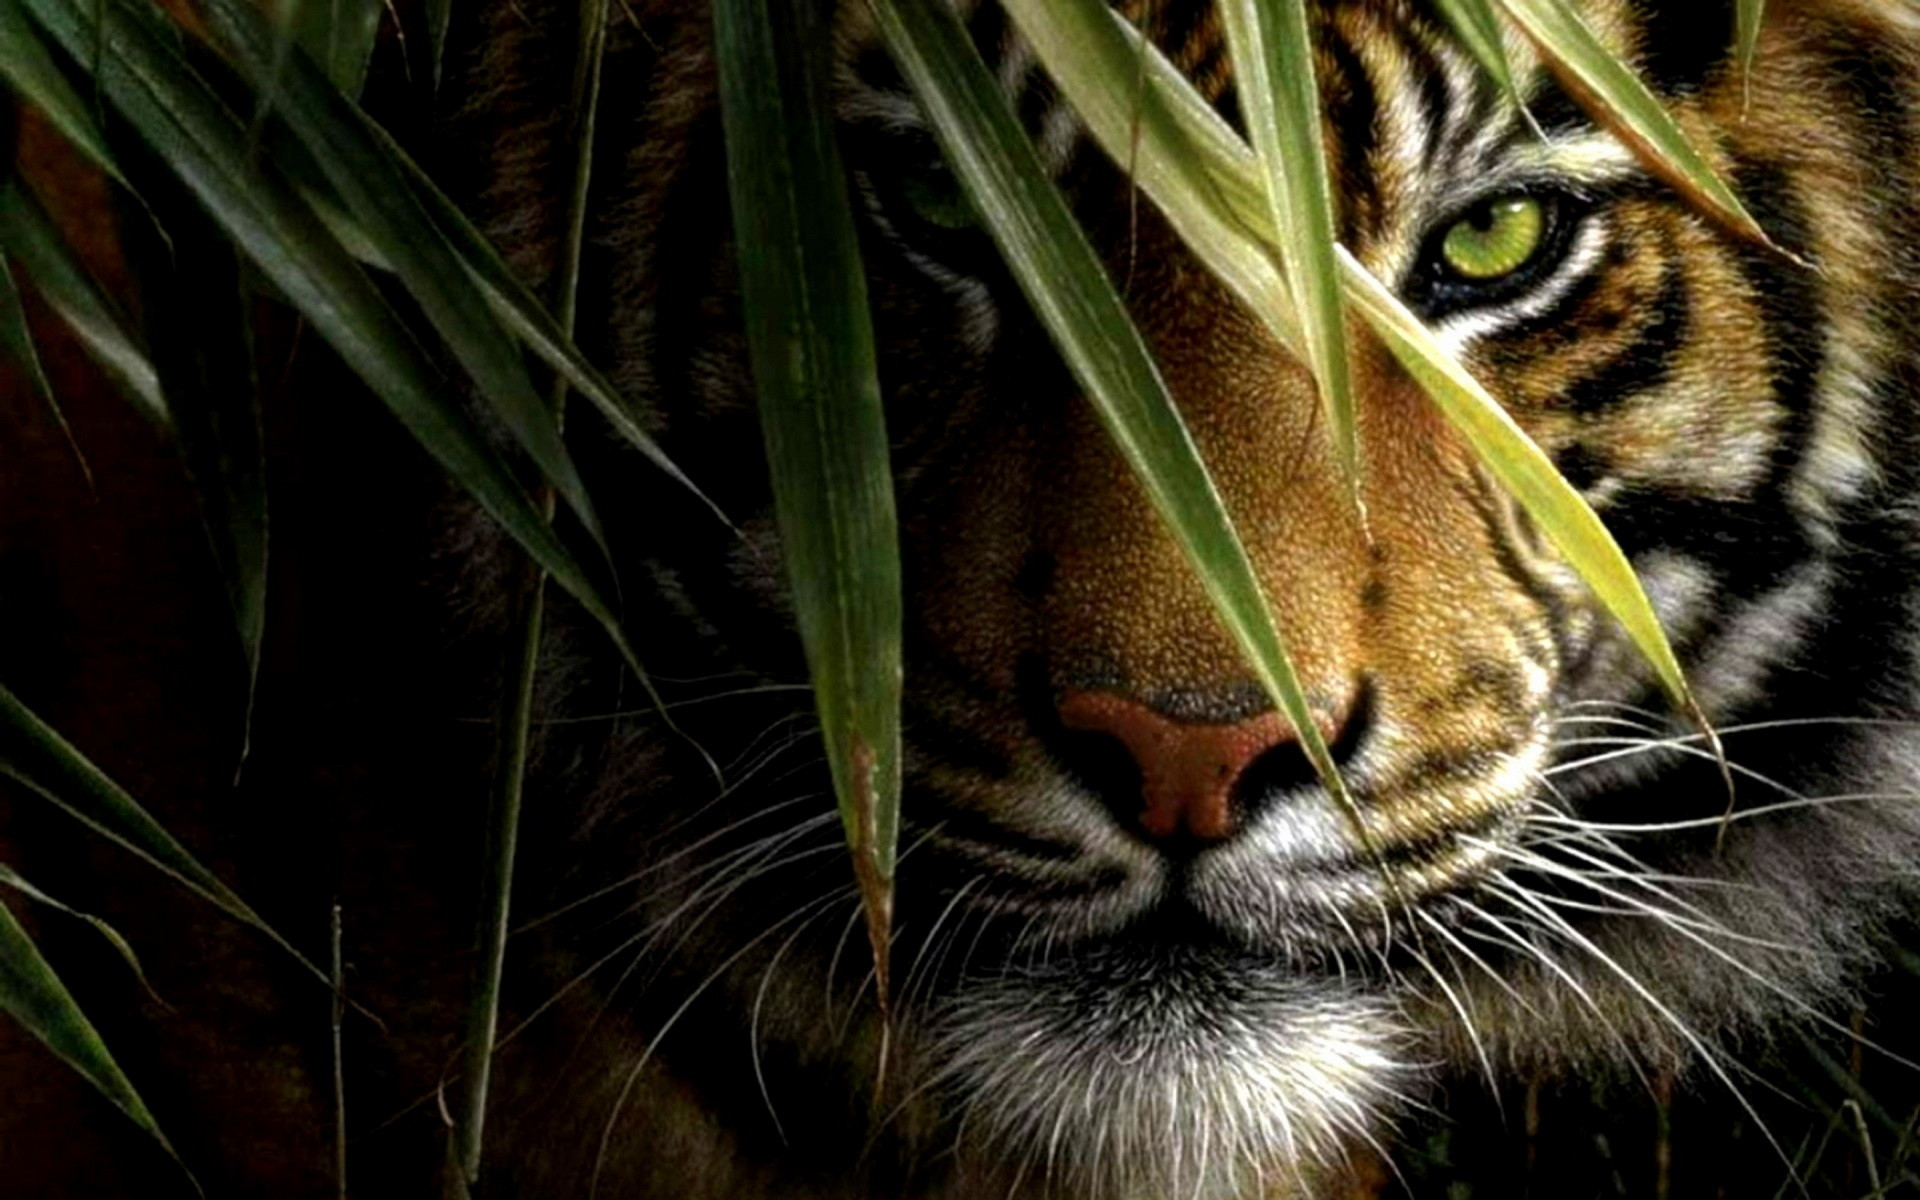 Tiger Wallpapers Images